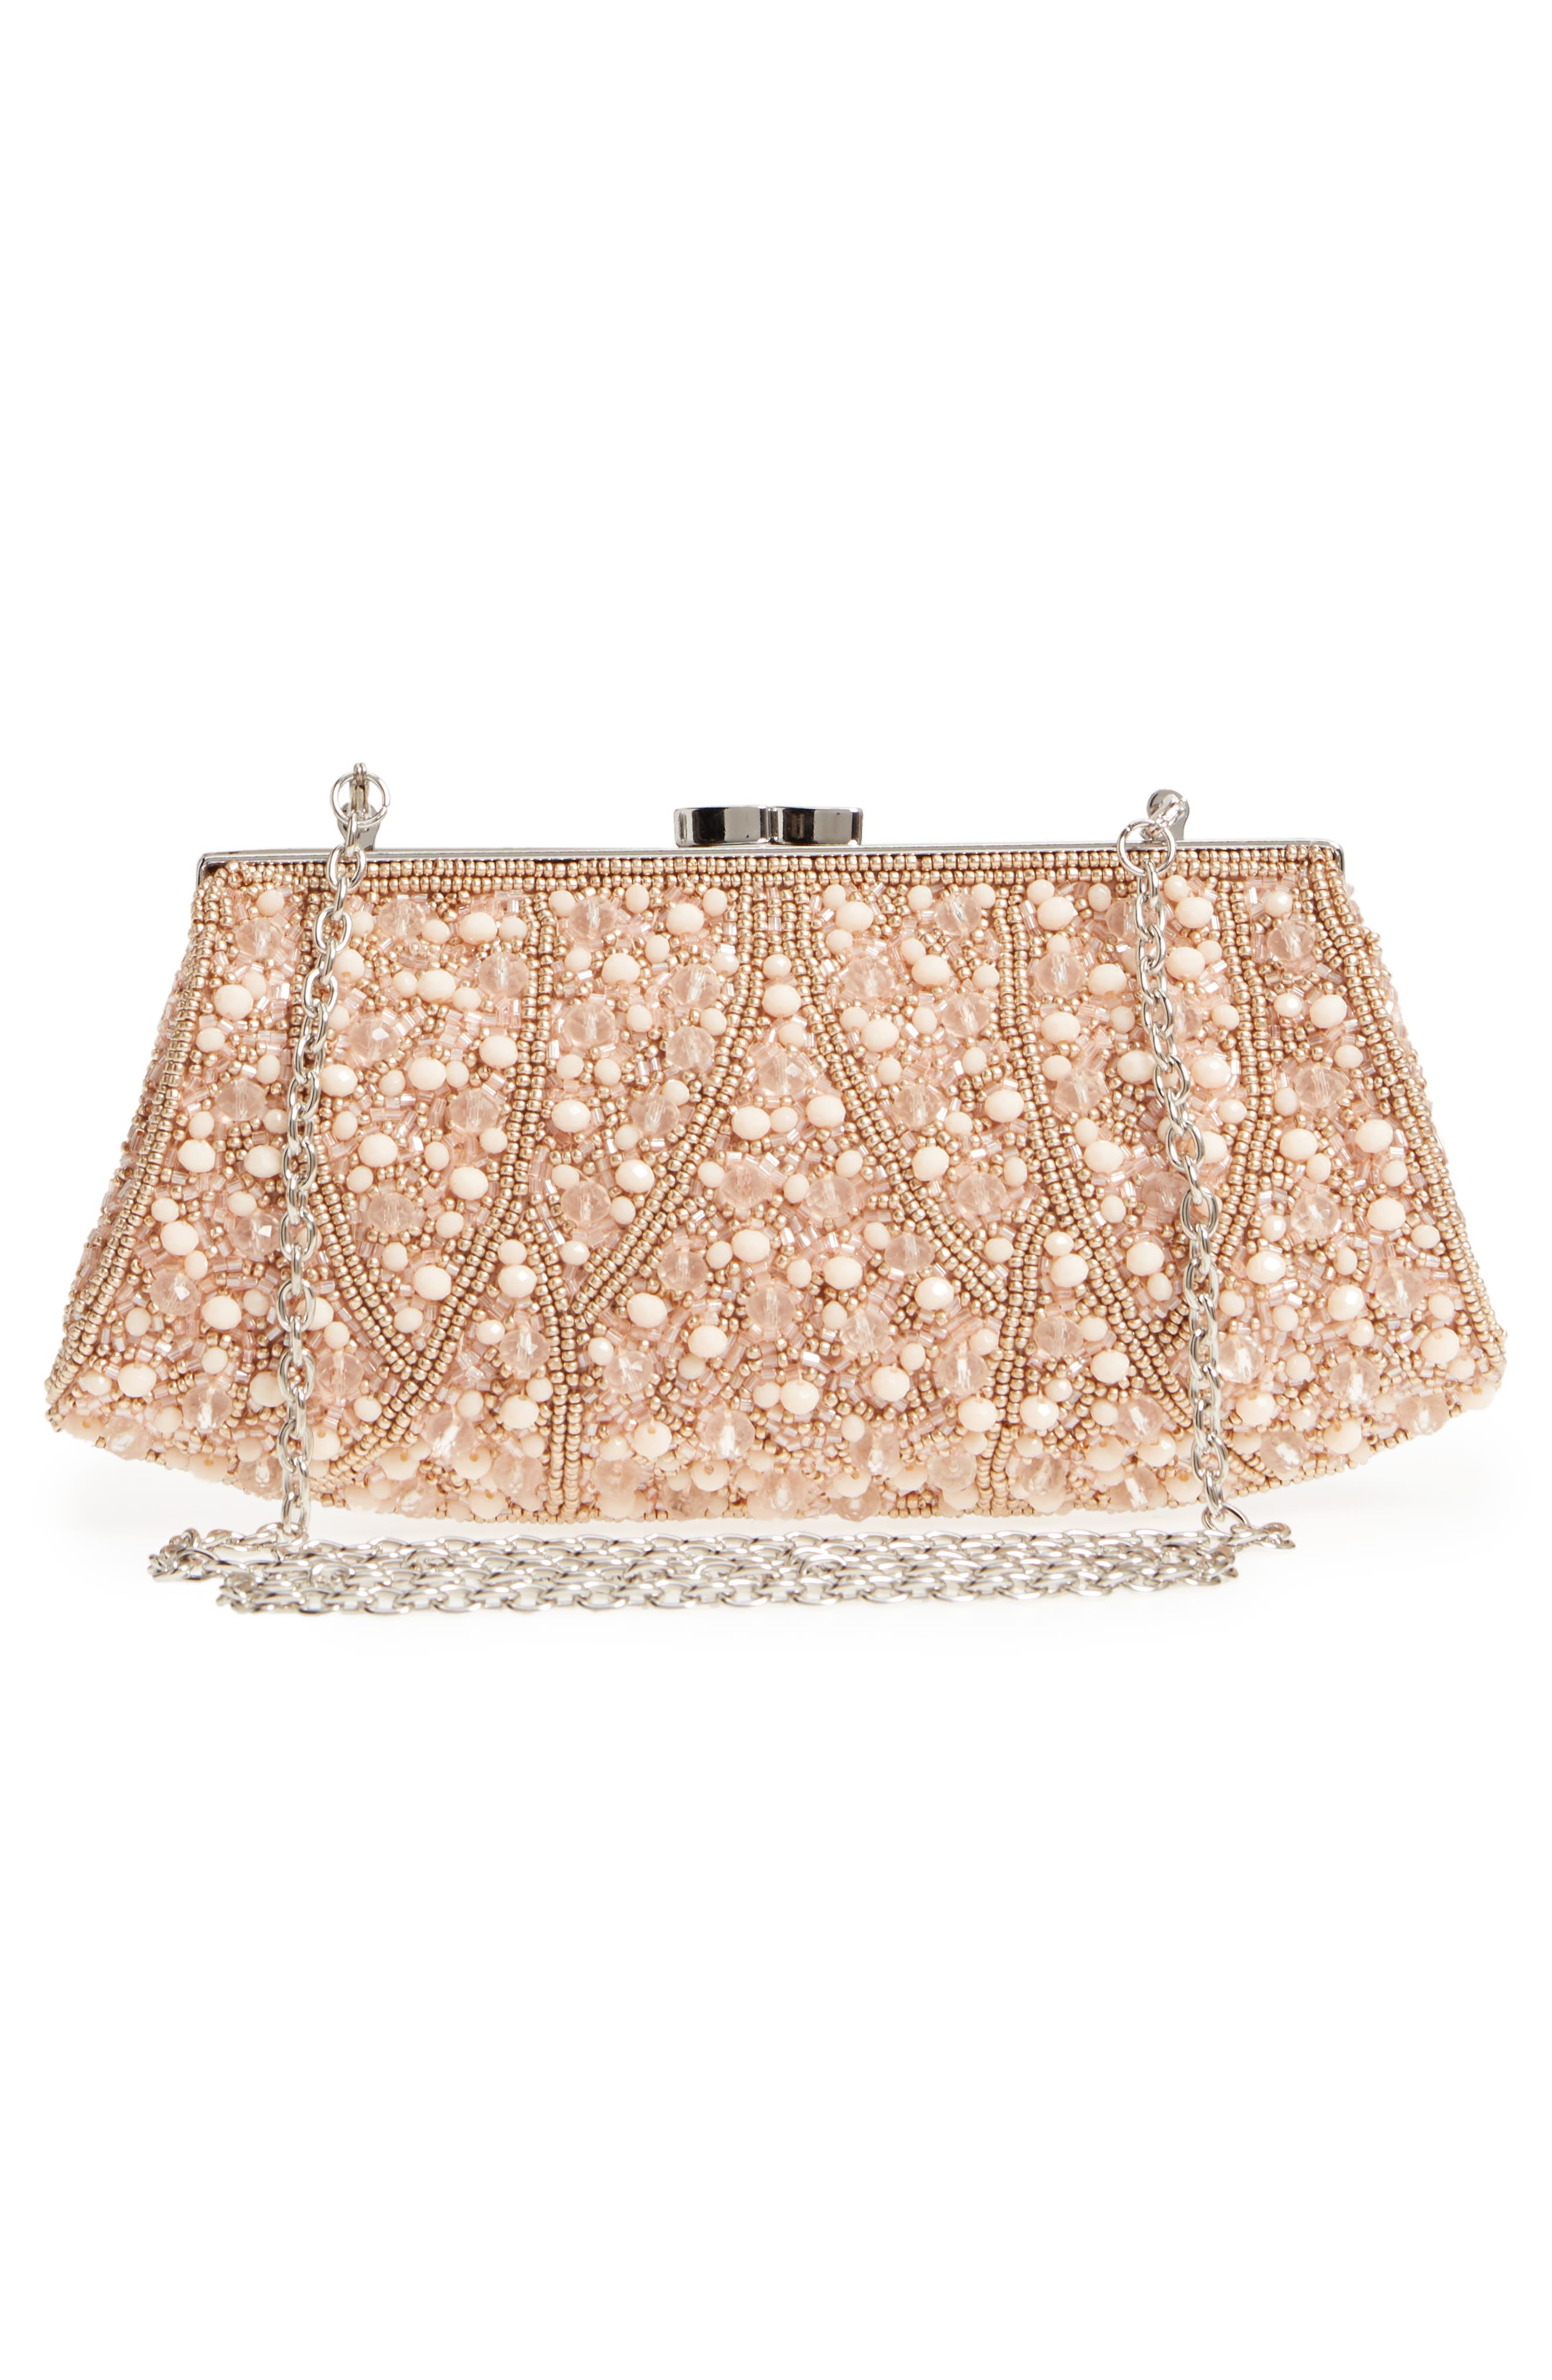 Beaded Rivoli Clutch,                             Alternate thumbnail 3, color,                             Blush